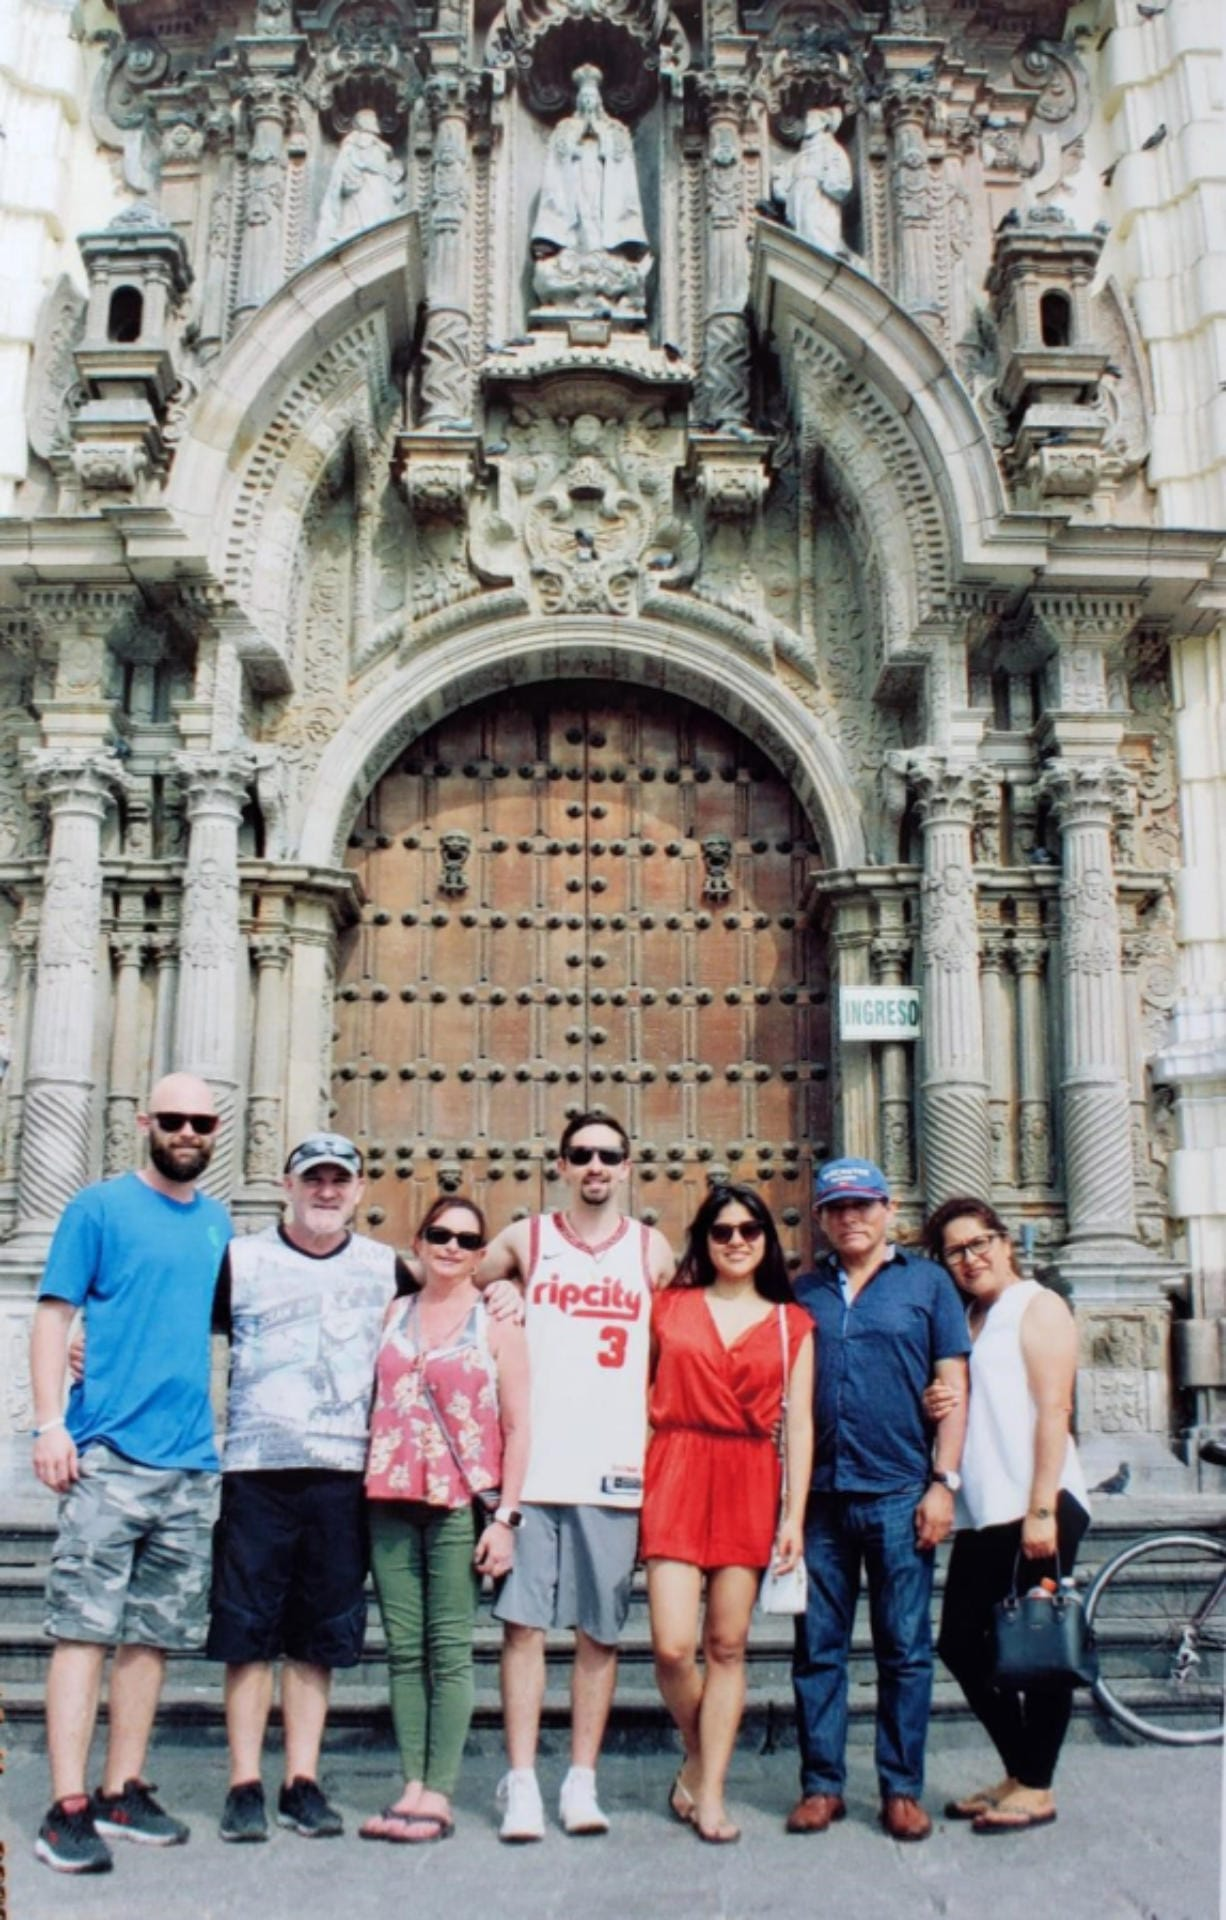 Heidi Marshall, third from left, poses with her family in front of the St. Francis Monastery in Lima, Peru. Marshall and four others are stuck near Lima after arriving on March 13 to visit her new in-laws.